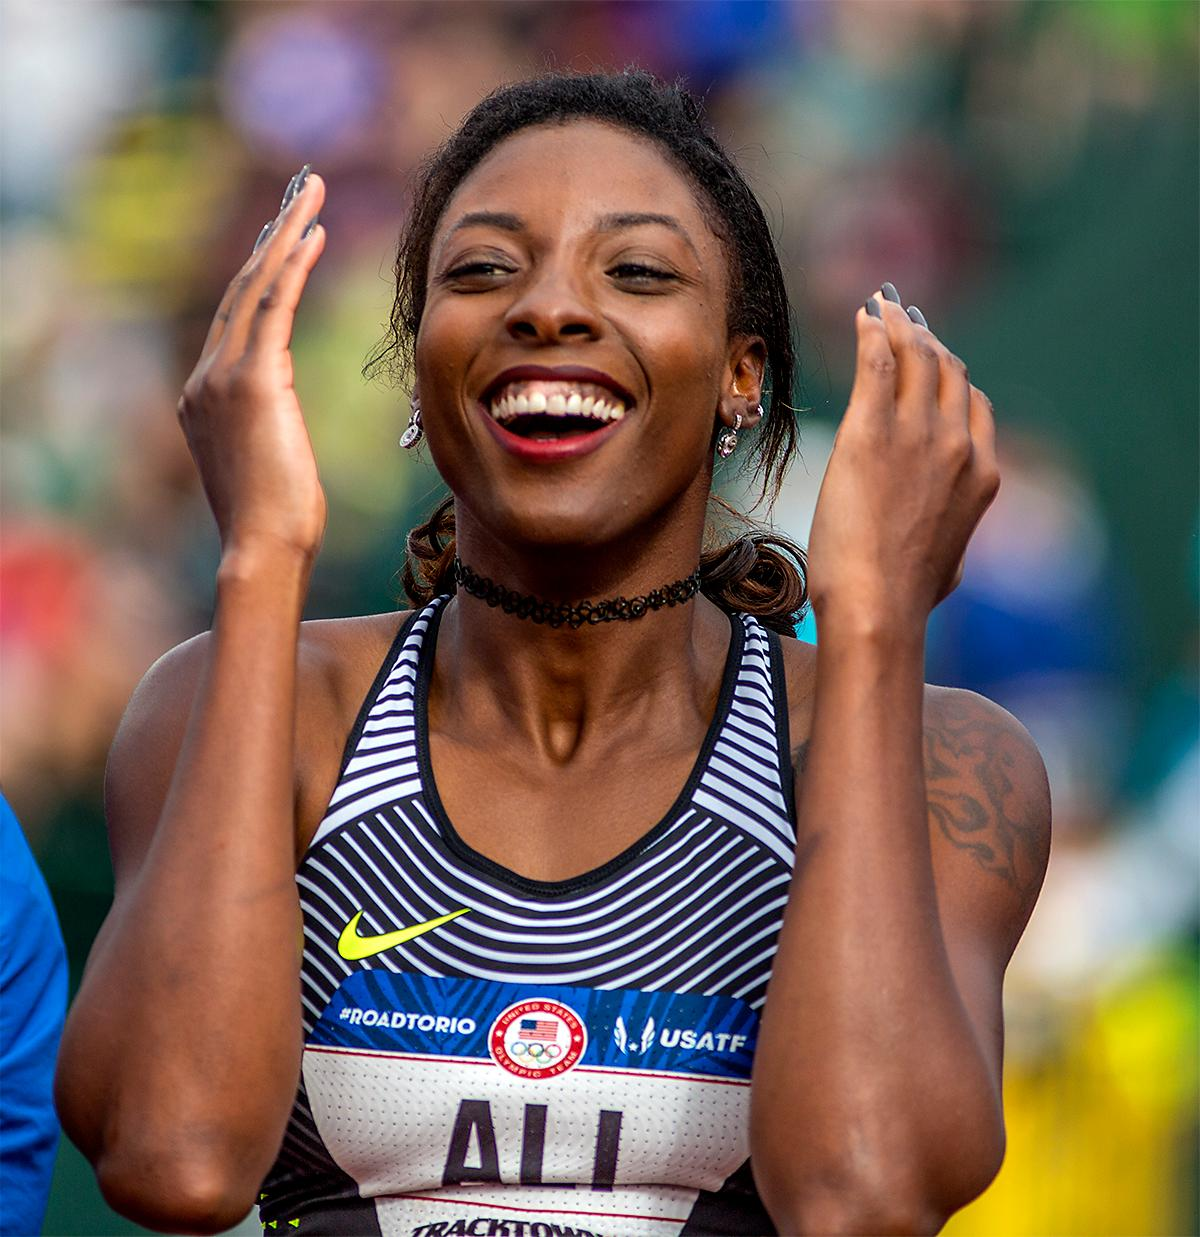 Nike's Nia Ali is overjoyed after taking third in the 100 meter hurdles in a time of 12.55 and punching her ticket for Rio. Photo by August Frank, Oregon News Lab